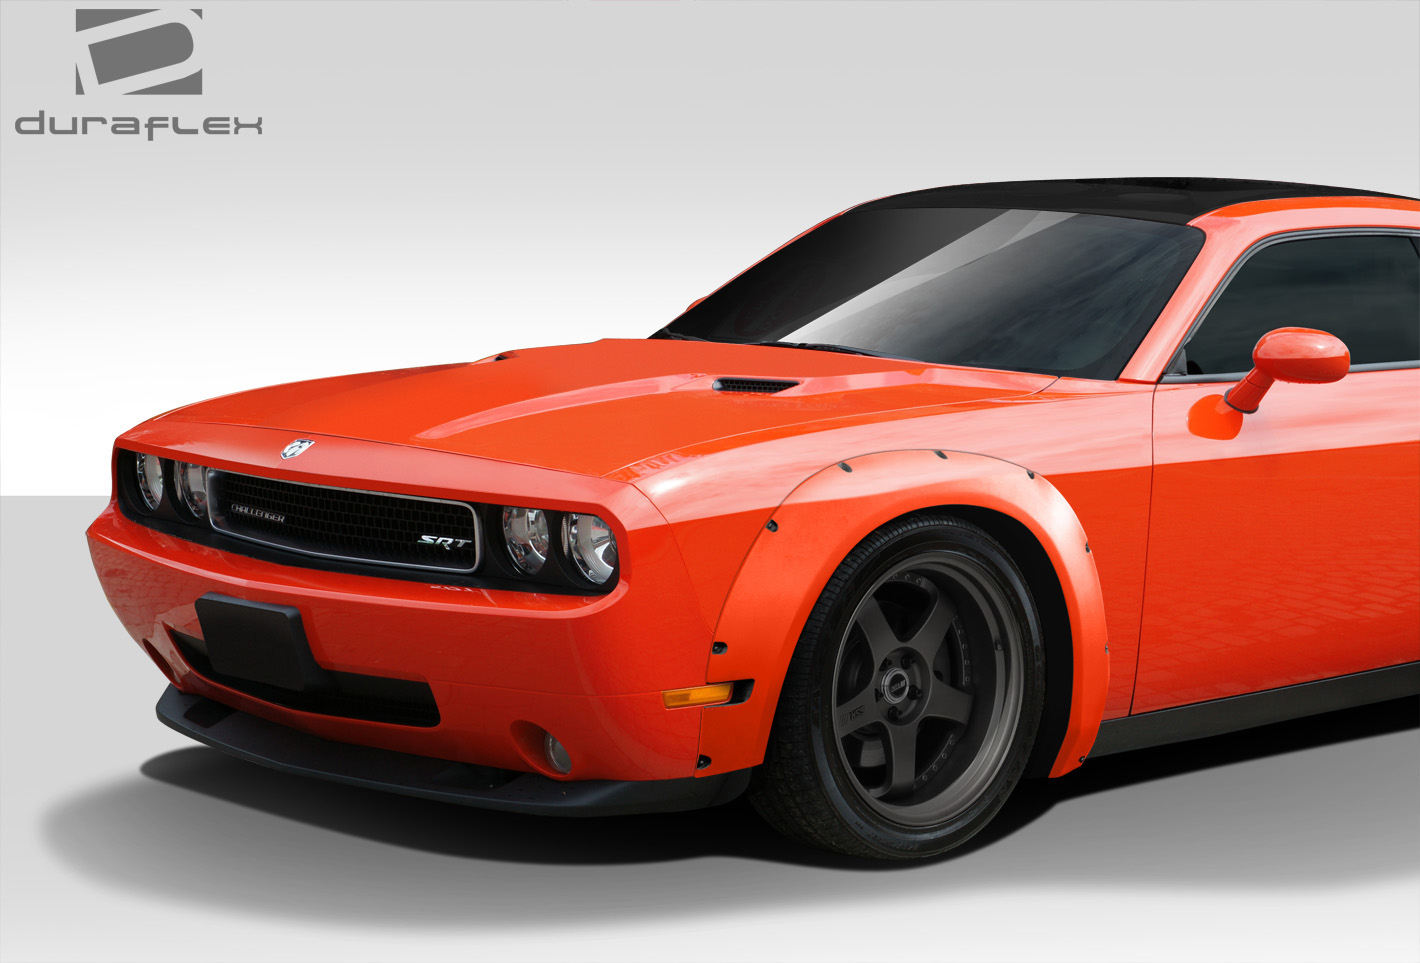 dodge challenger duraflex novara wide front fender flares body kit. Cars Review. Best American Auto & Cars Review